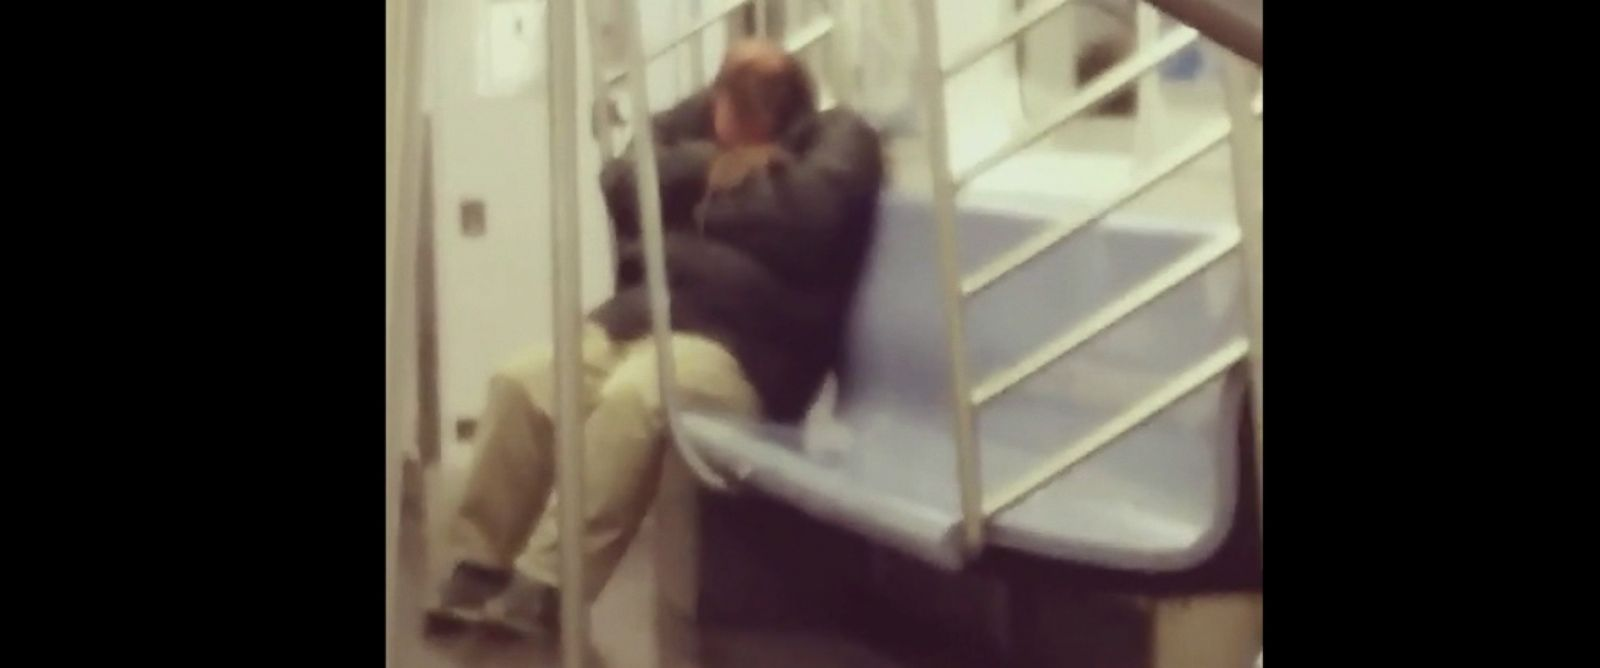 PHOTO: A rat crawled onto a man sleeping on the 7 train in New York City. Antony Lin captured the incident on video at 3 a.m., March 27, 2016.